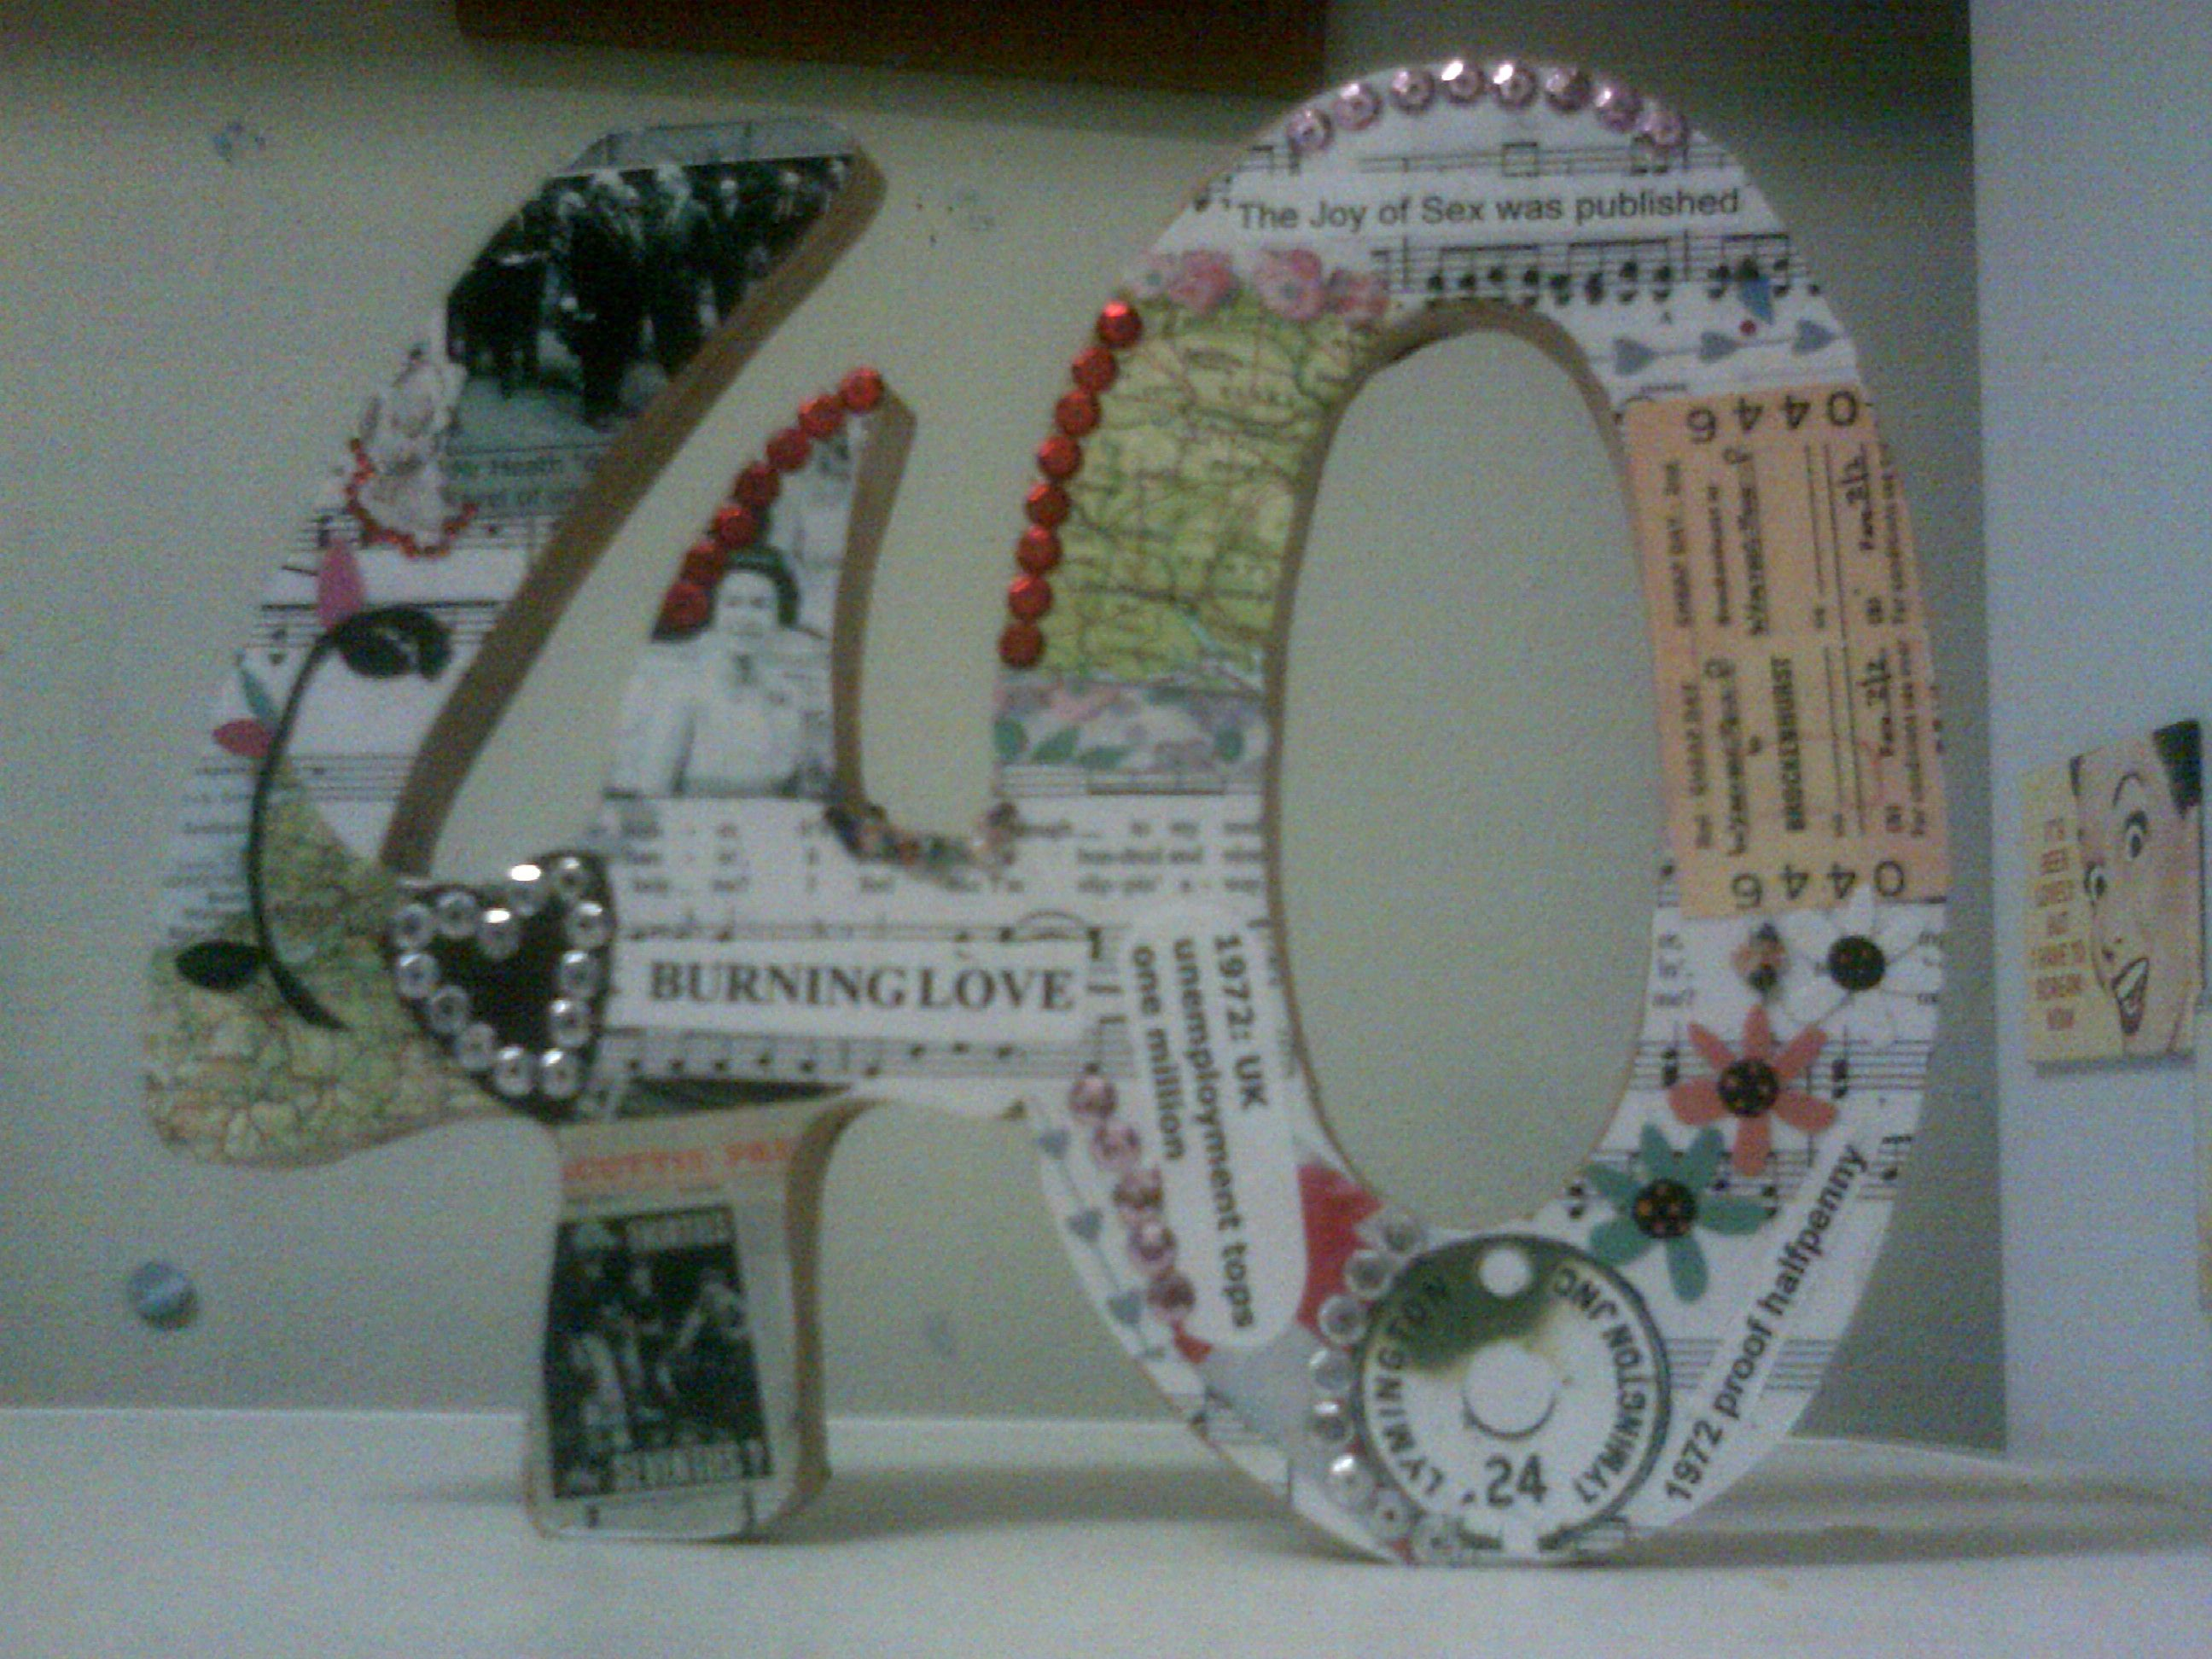 Unique Ruby Wedding Anniversary Gifts: Collage Made Up Of The Things That Happened The Year They